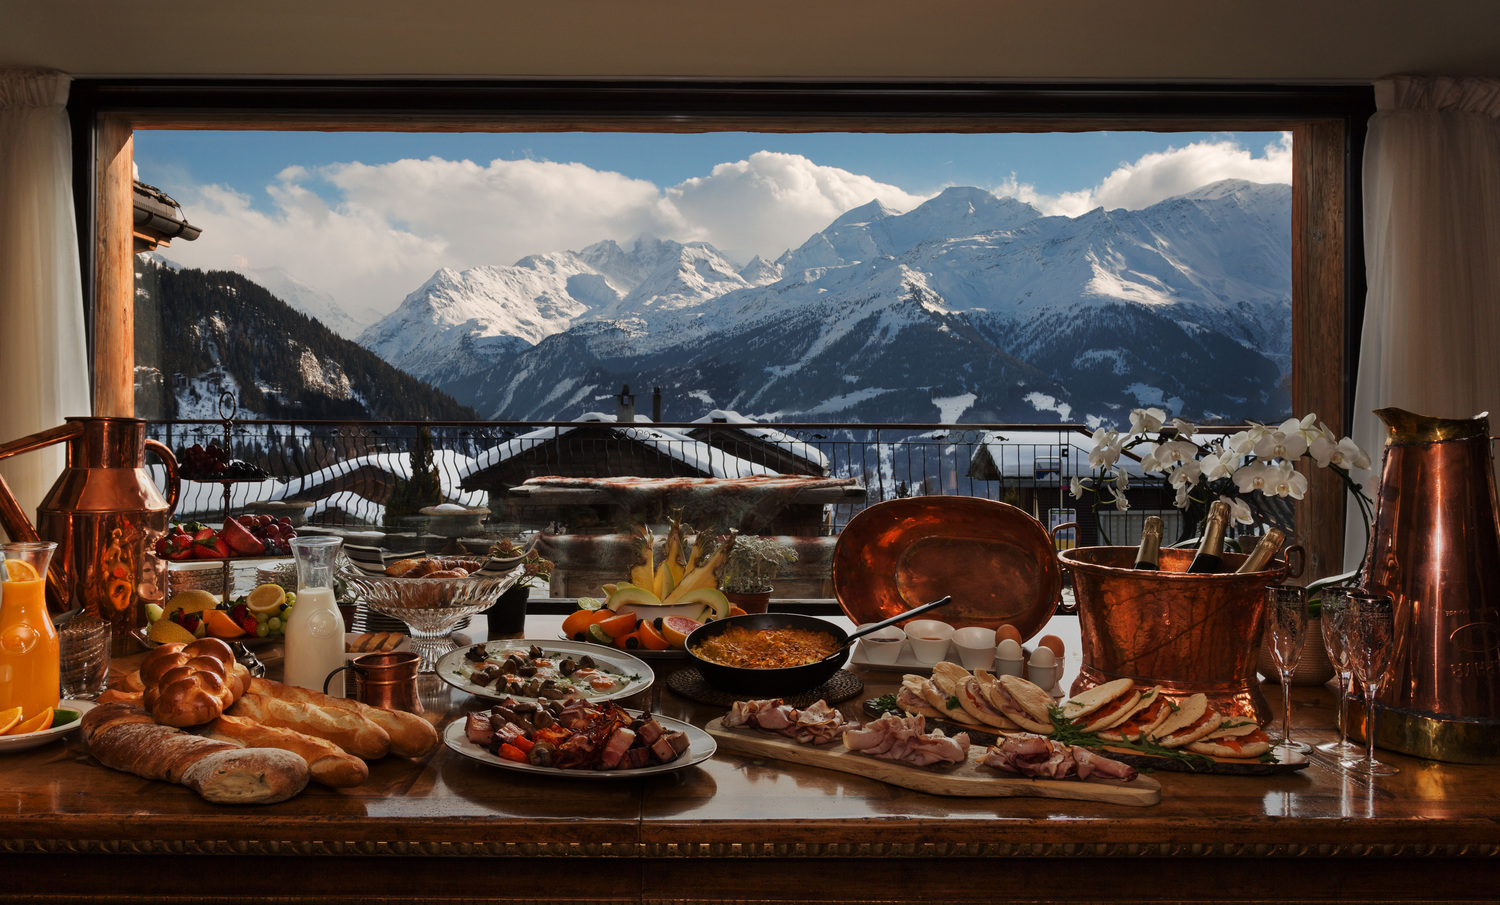 Breakfast at the best chalet in the world photo credit La Truffe Blanche